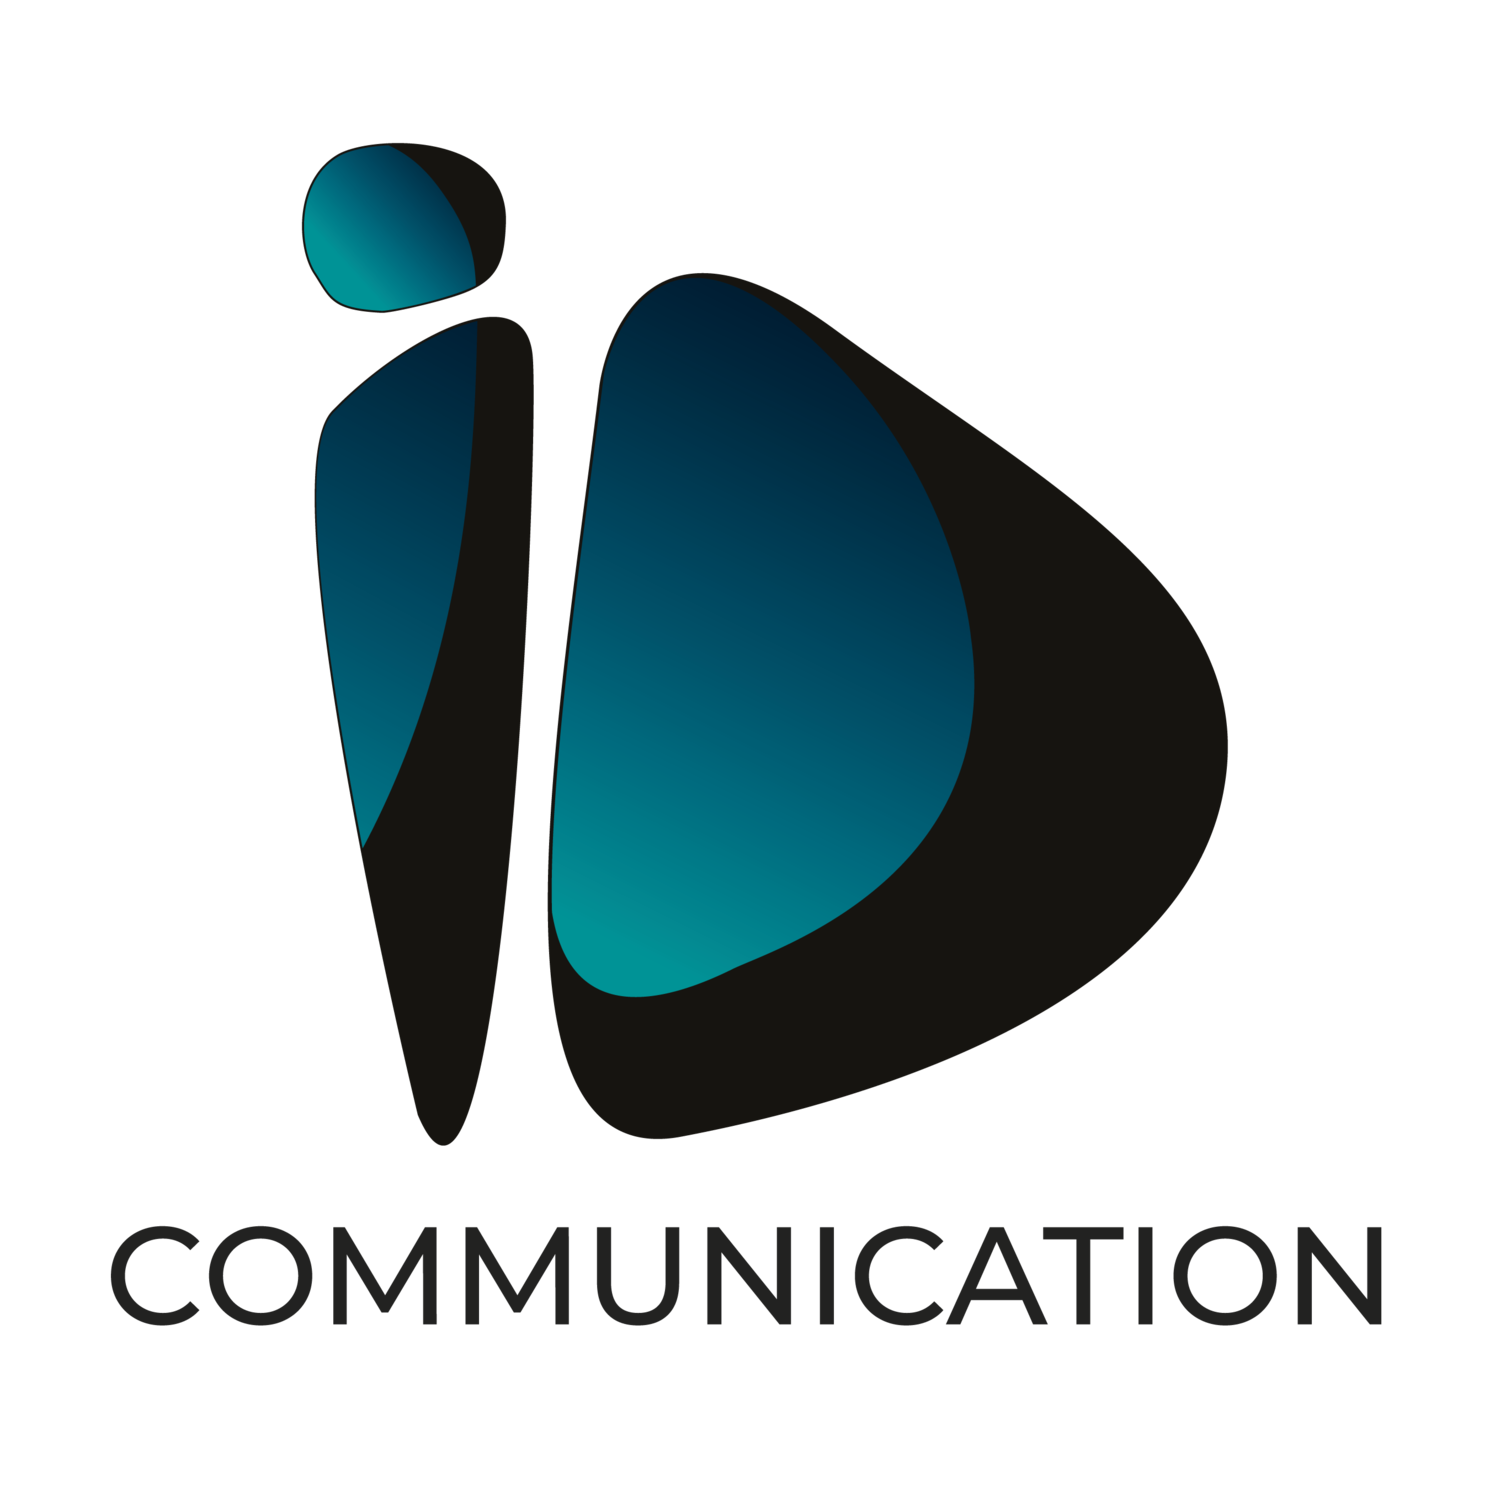 ID&CO - Communication et impression tous supports